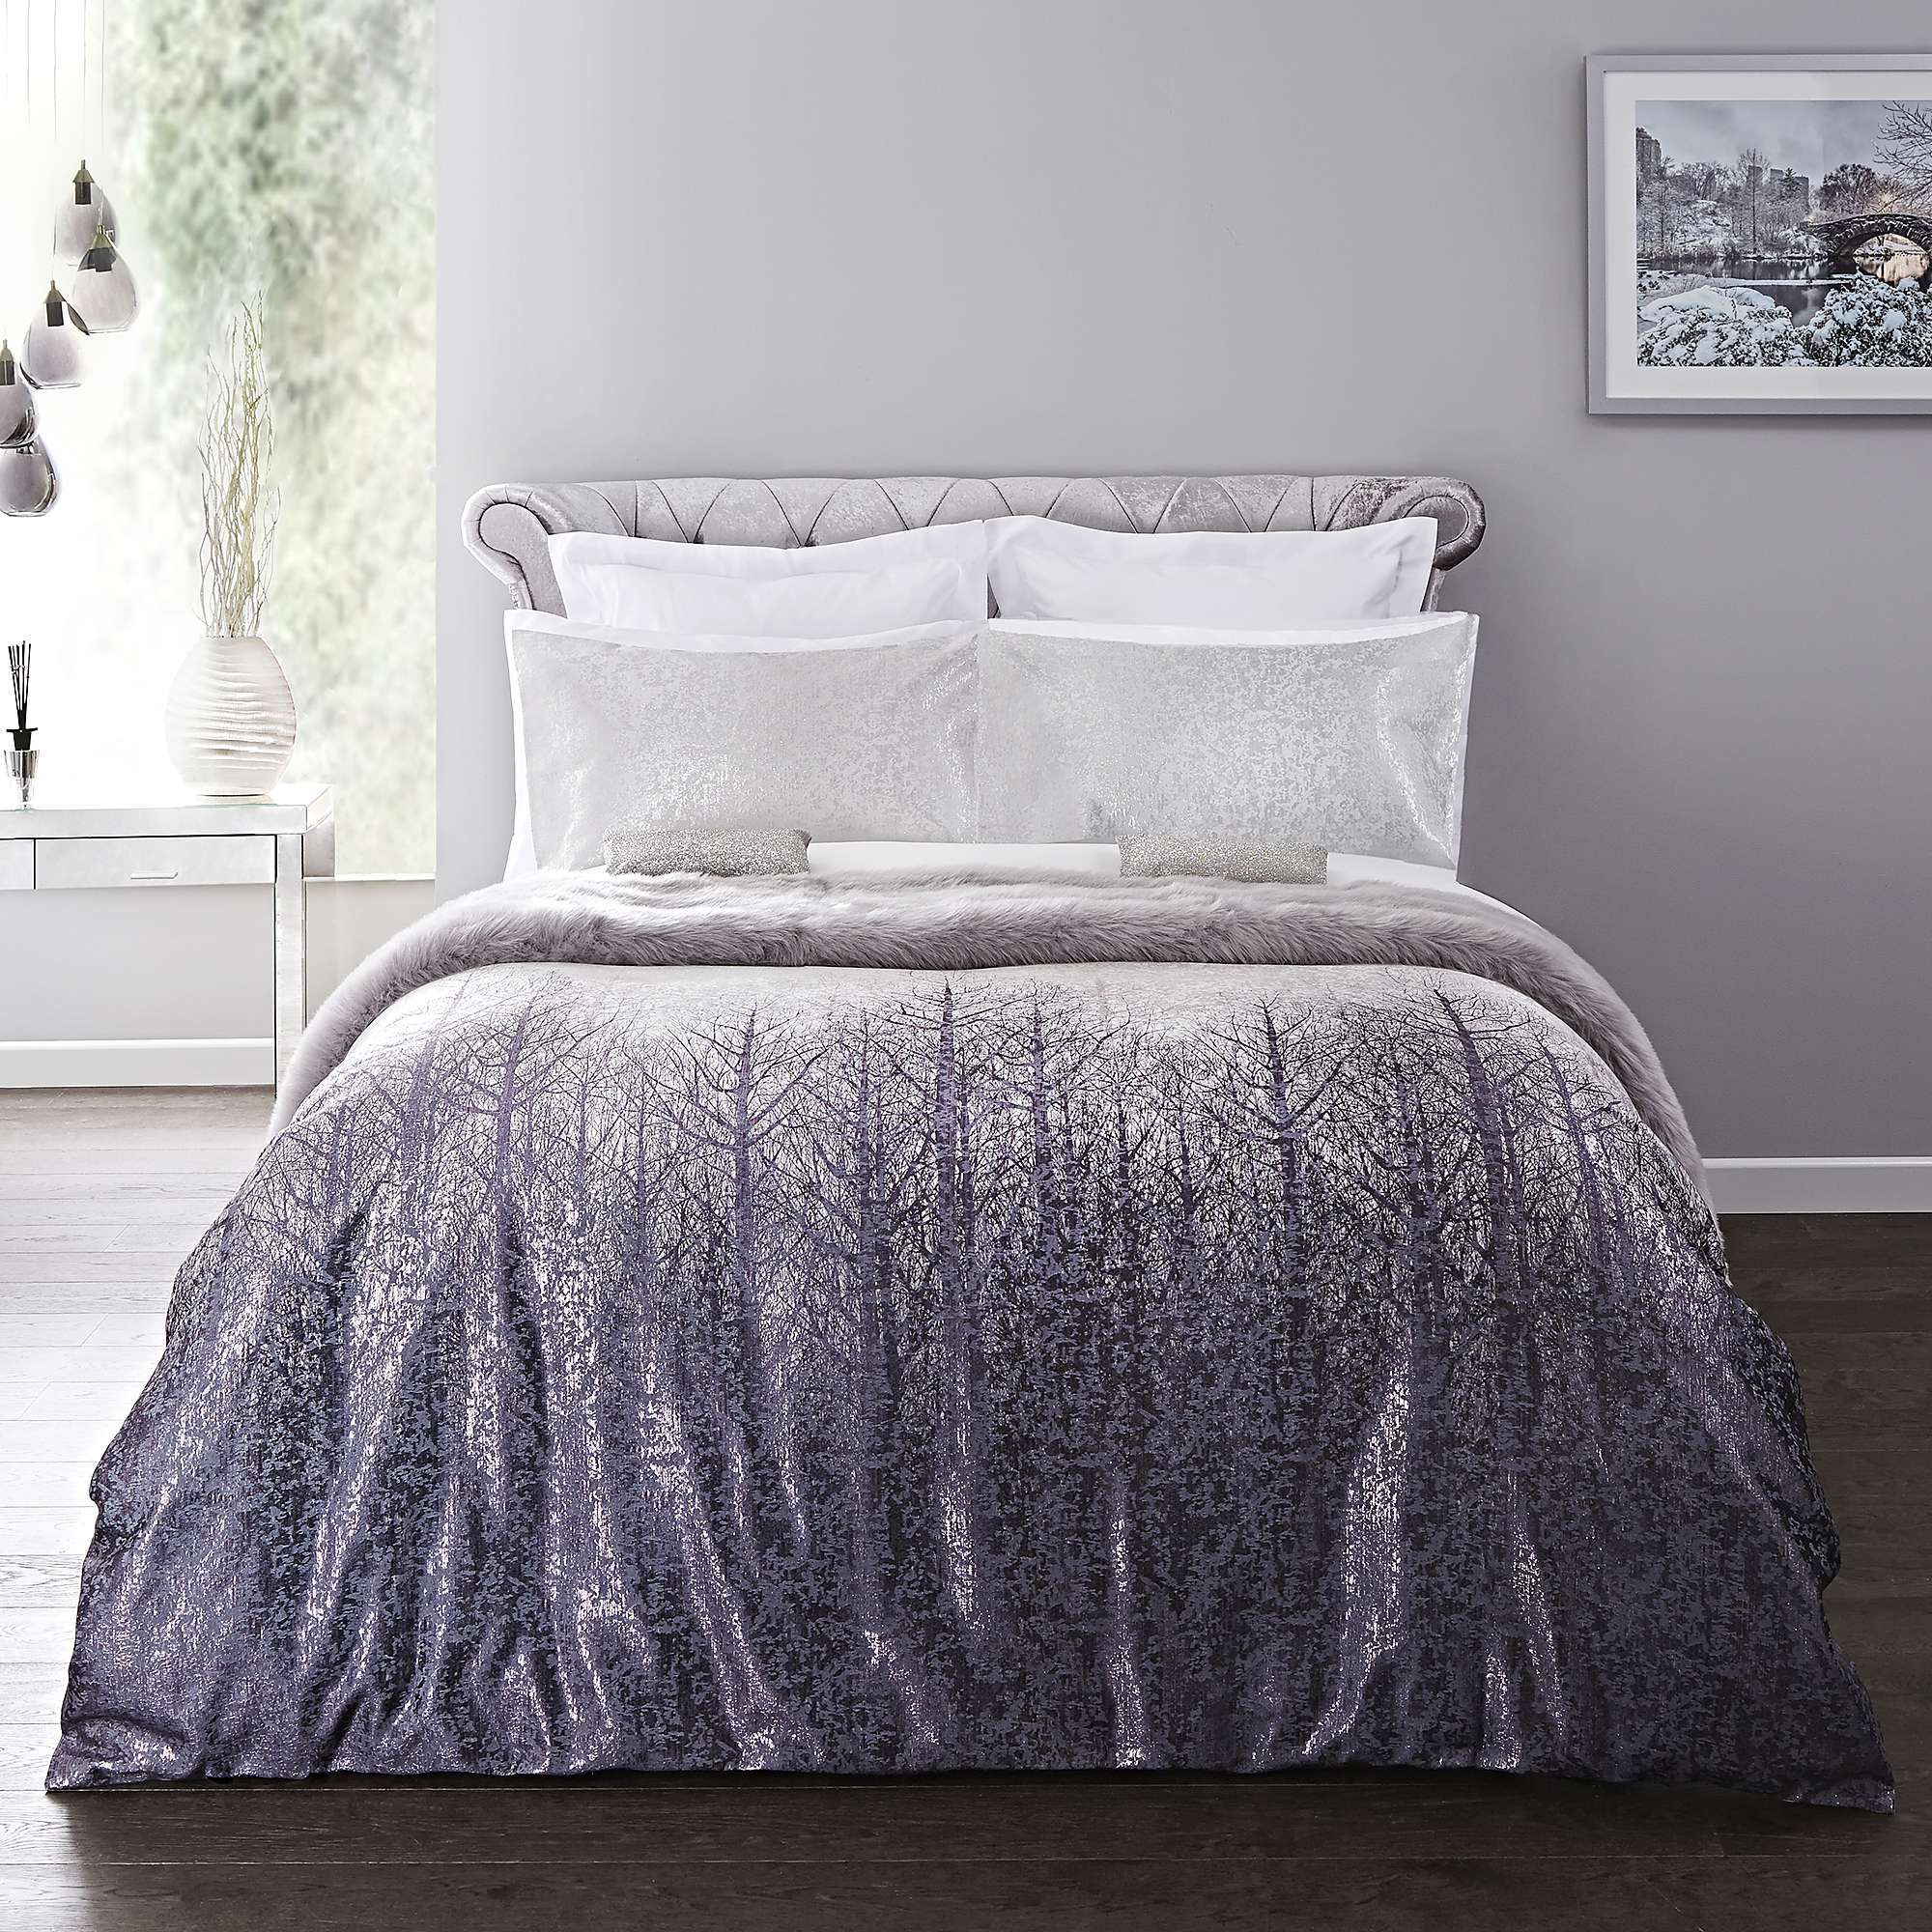 5a Fifth Avenue Silver Winter Trees Duvet Cover And Pillowcase Set